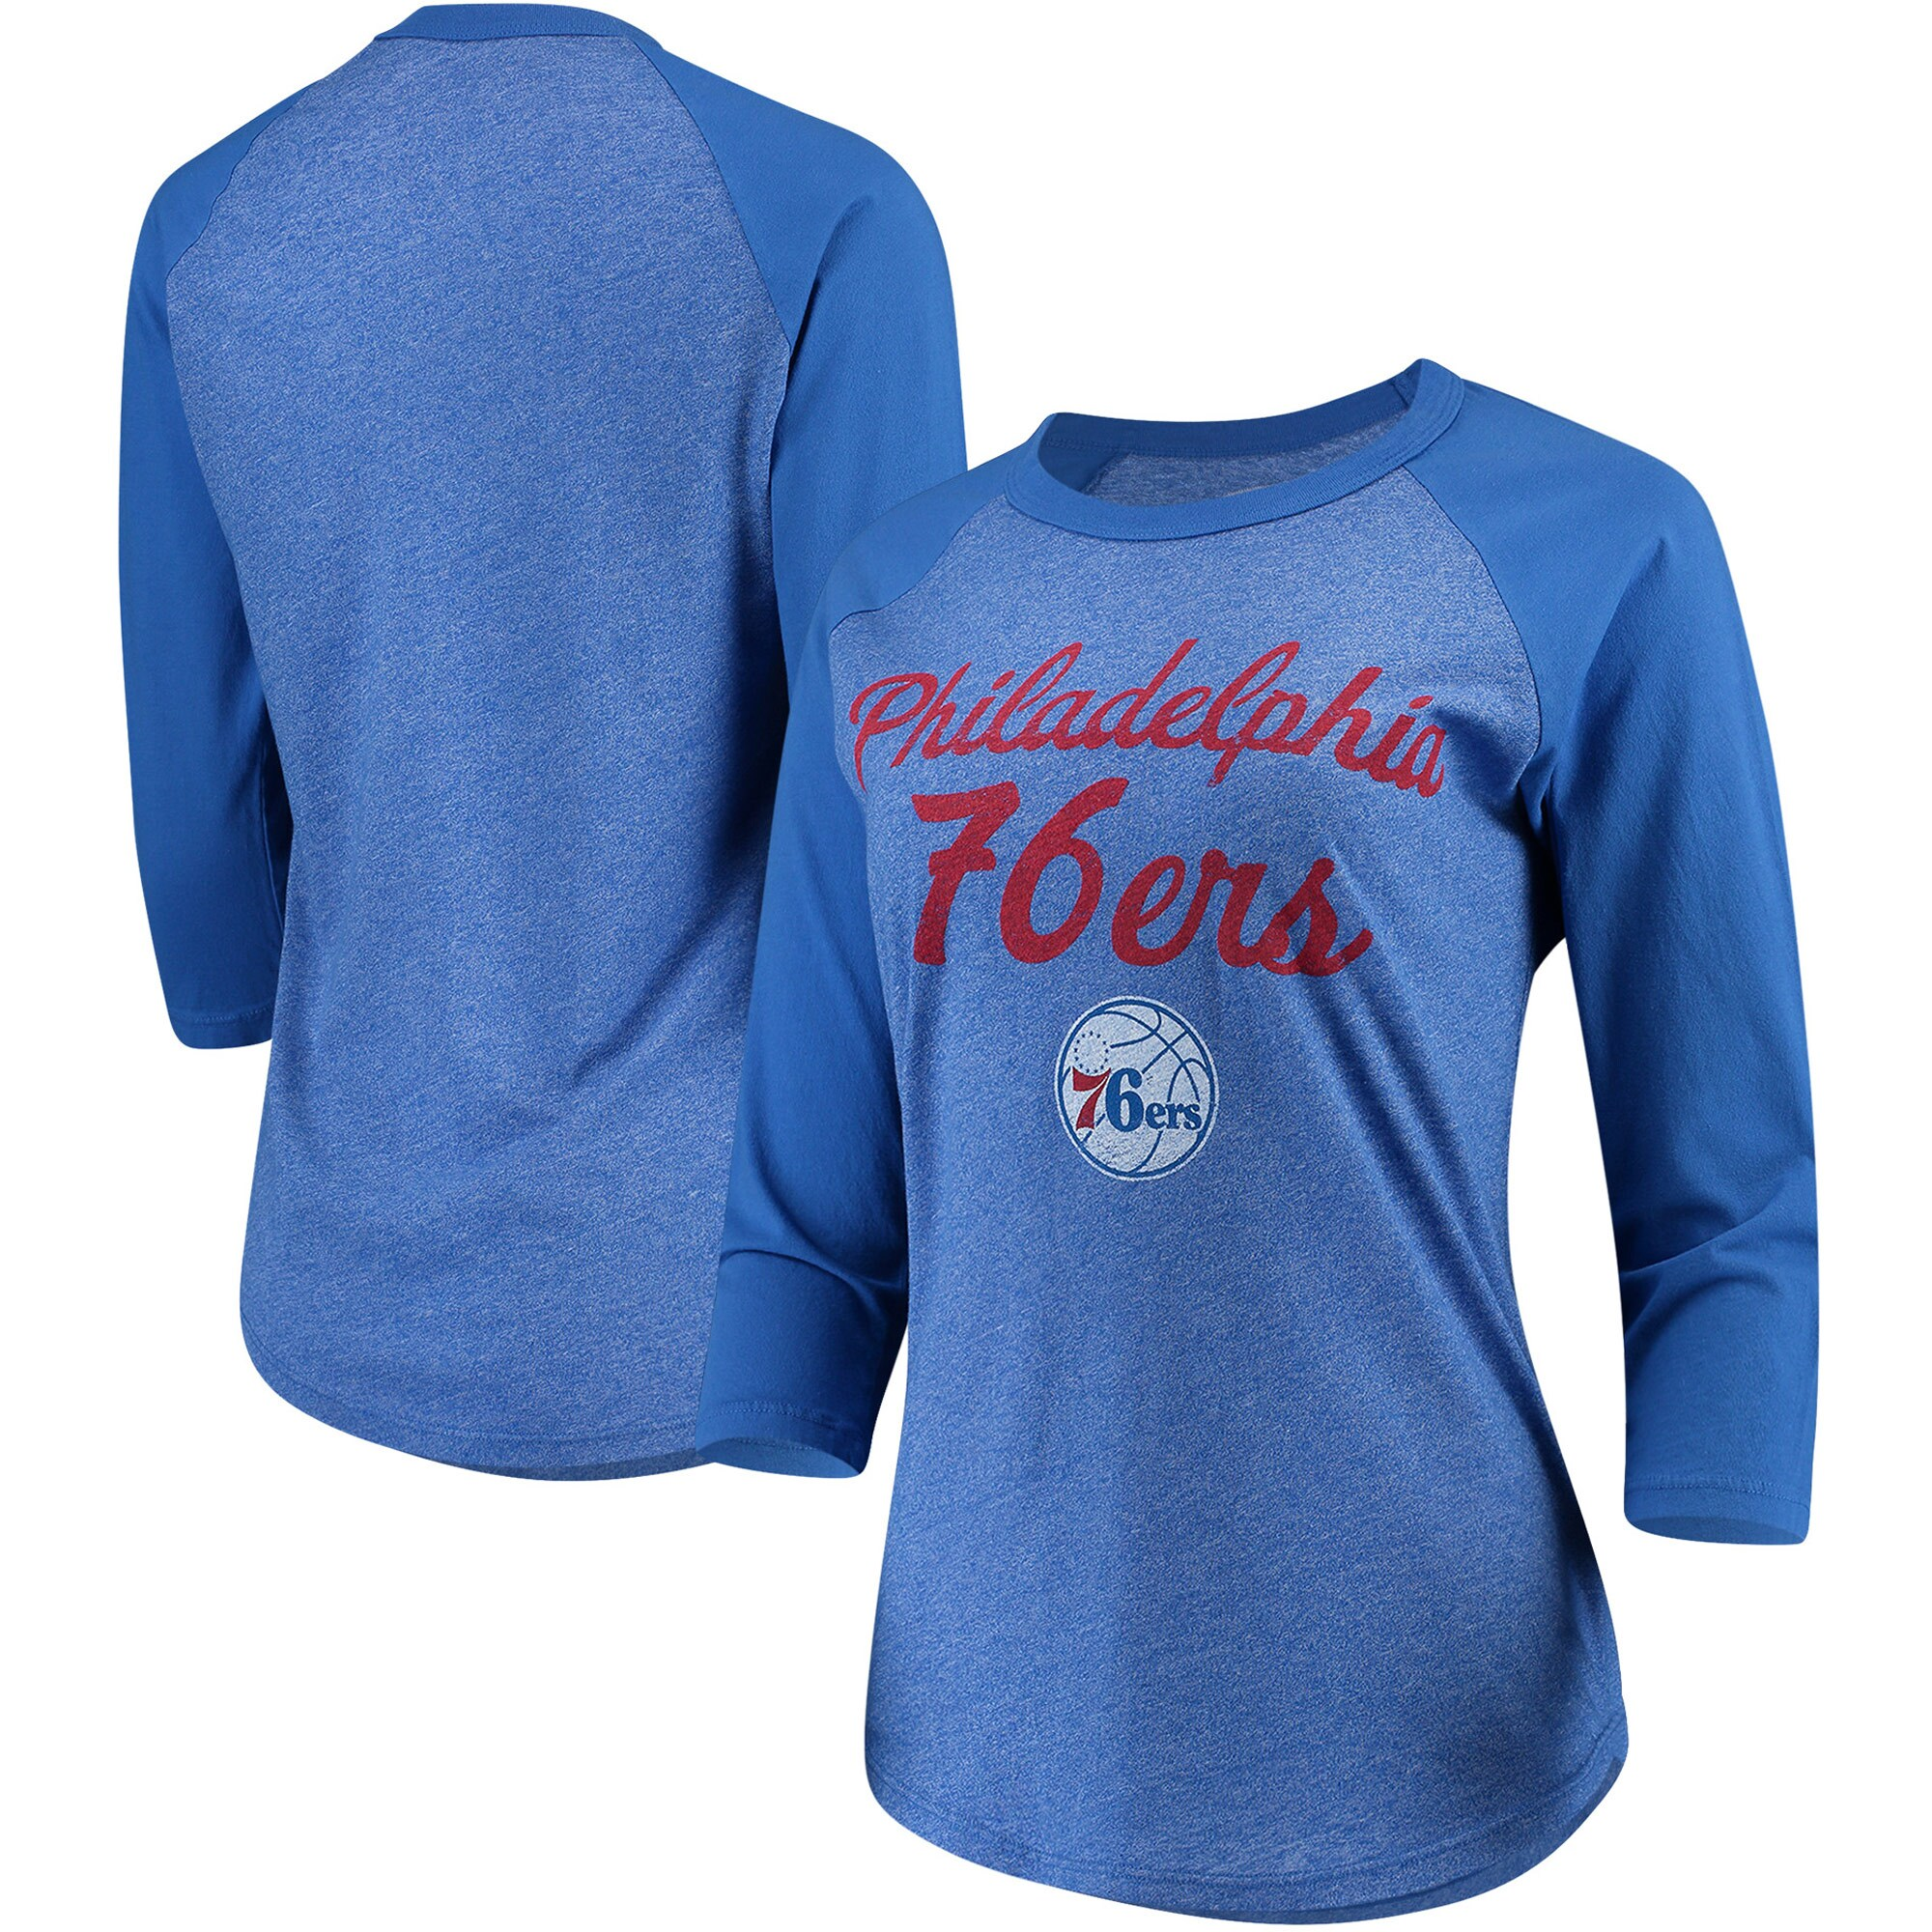 Philadelphia 76ers Majestic Threads Women's Double Dribble Raglan Tri-Blend 3/4-Sleeve T-Shirt - Heathered Royal/Royal